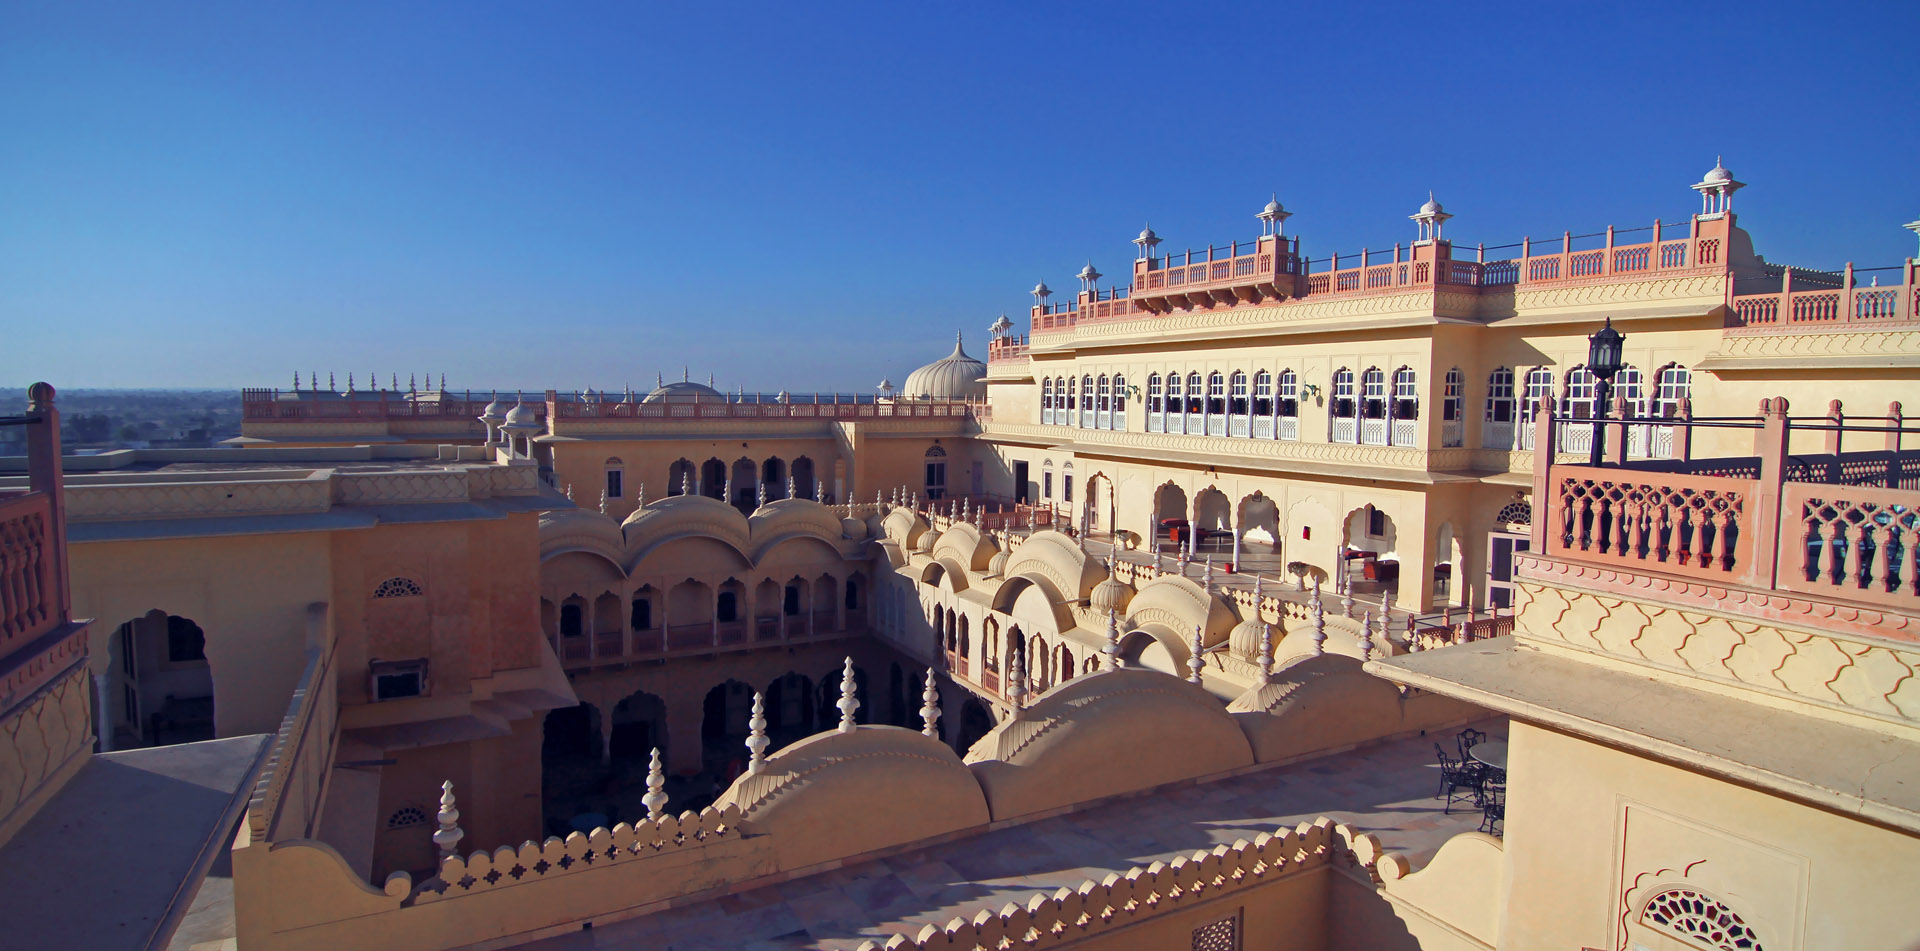 Alsisar Mahal Rajasthan - Majestic Palace of Magnetic Fields